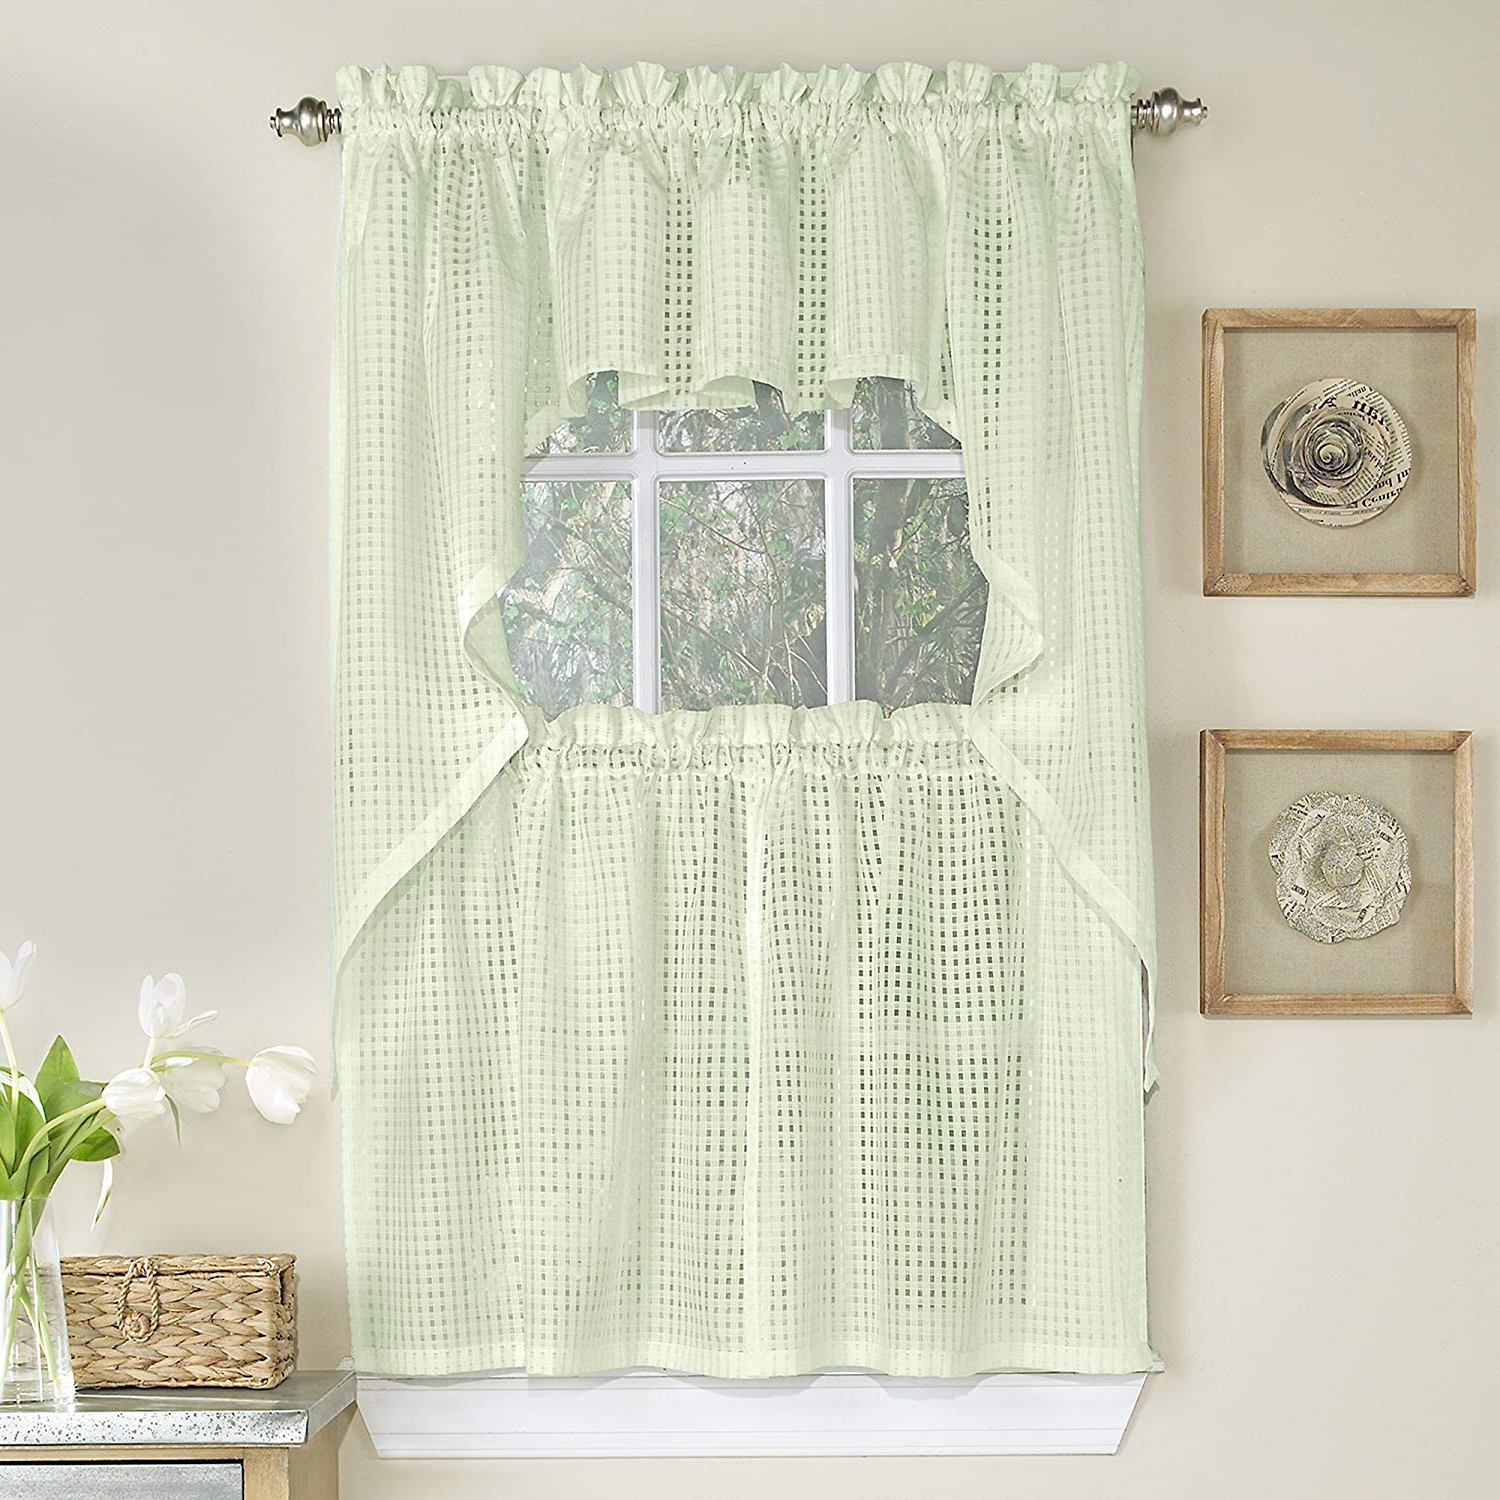 "Widely Used Sweet Home Collection 5 Pc, Swag Pair, Valance (5 Piece) Kitchen Curtain Set, 36"" Tier, Micro/check Cream With Cotton Lace 5 Piece Window Tier And Swag Sets (View 4 of 20)"